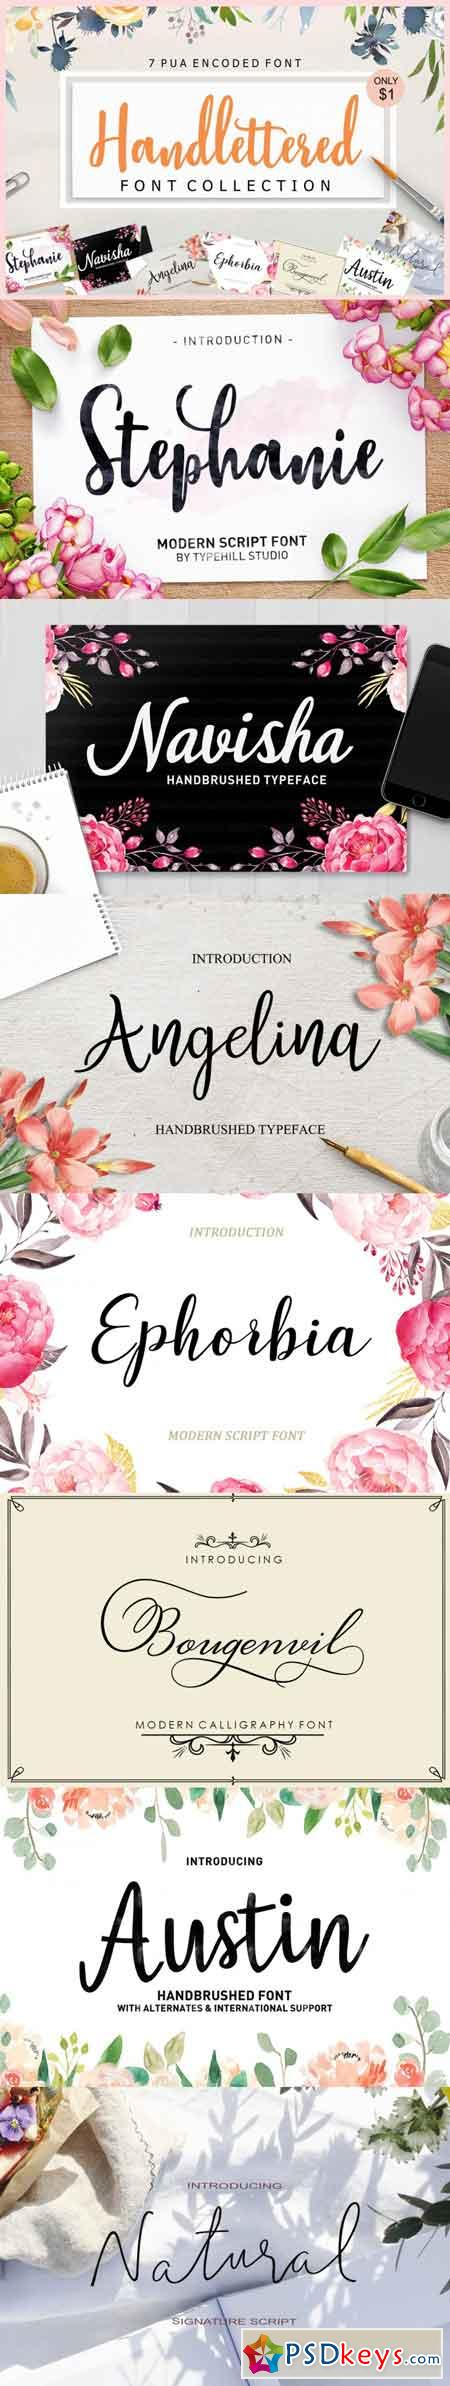 Handlettered Font Collection 3466621